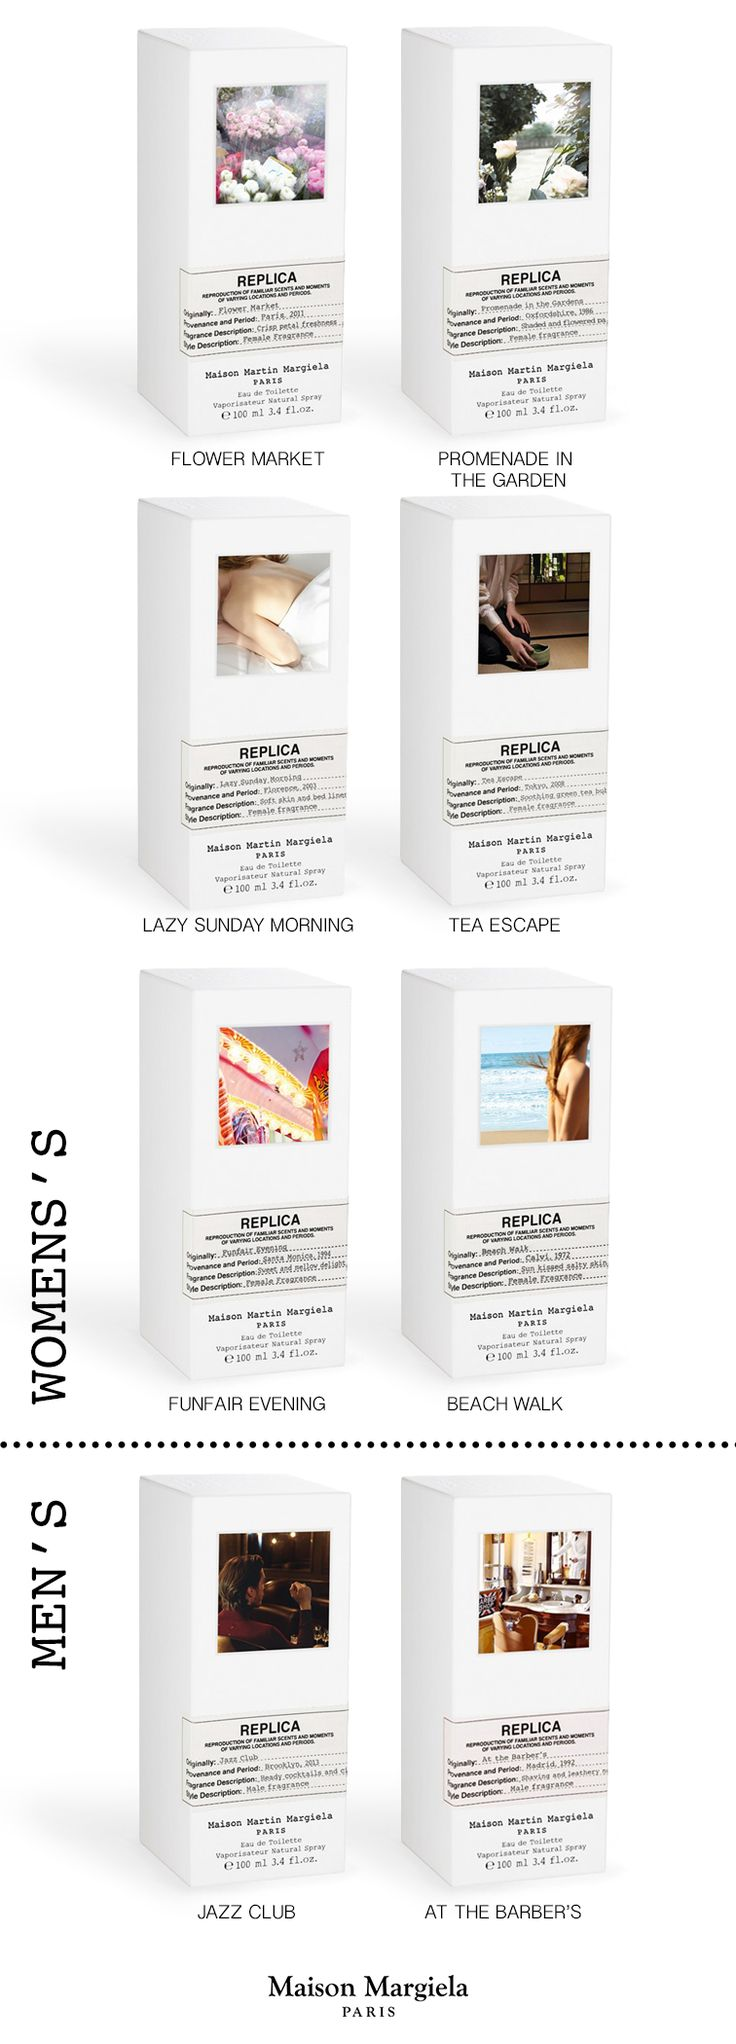 Replica' fragrances instantly evoke images, impressions and emotions that echo the collective unconscious as well as our own personal history. Each 'Replica' fragrance evokes the timelessness of olfactive memories, re-transcribing moments into unique scents. Discover the collection of eight fragrances. #smellslikememories